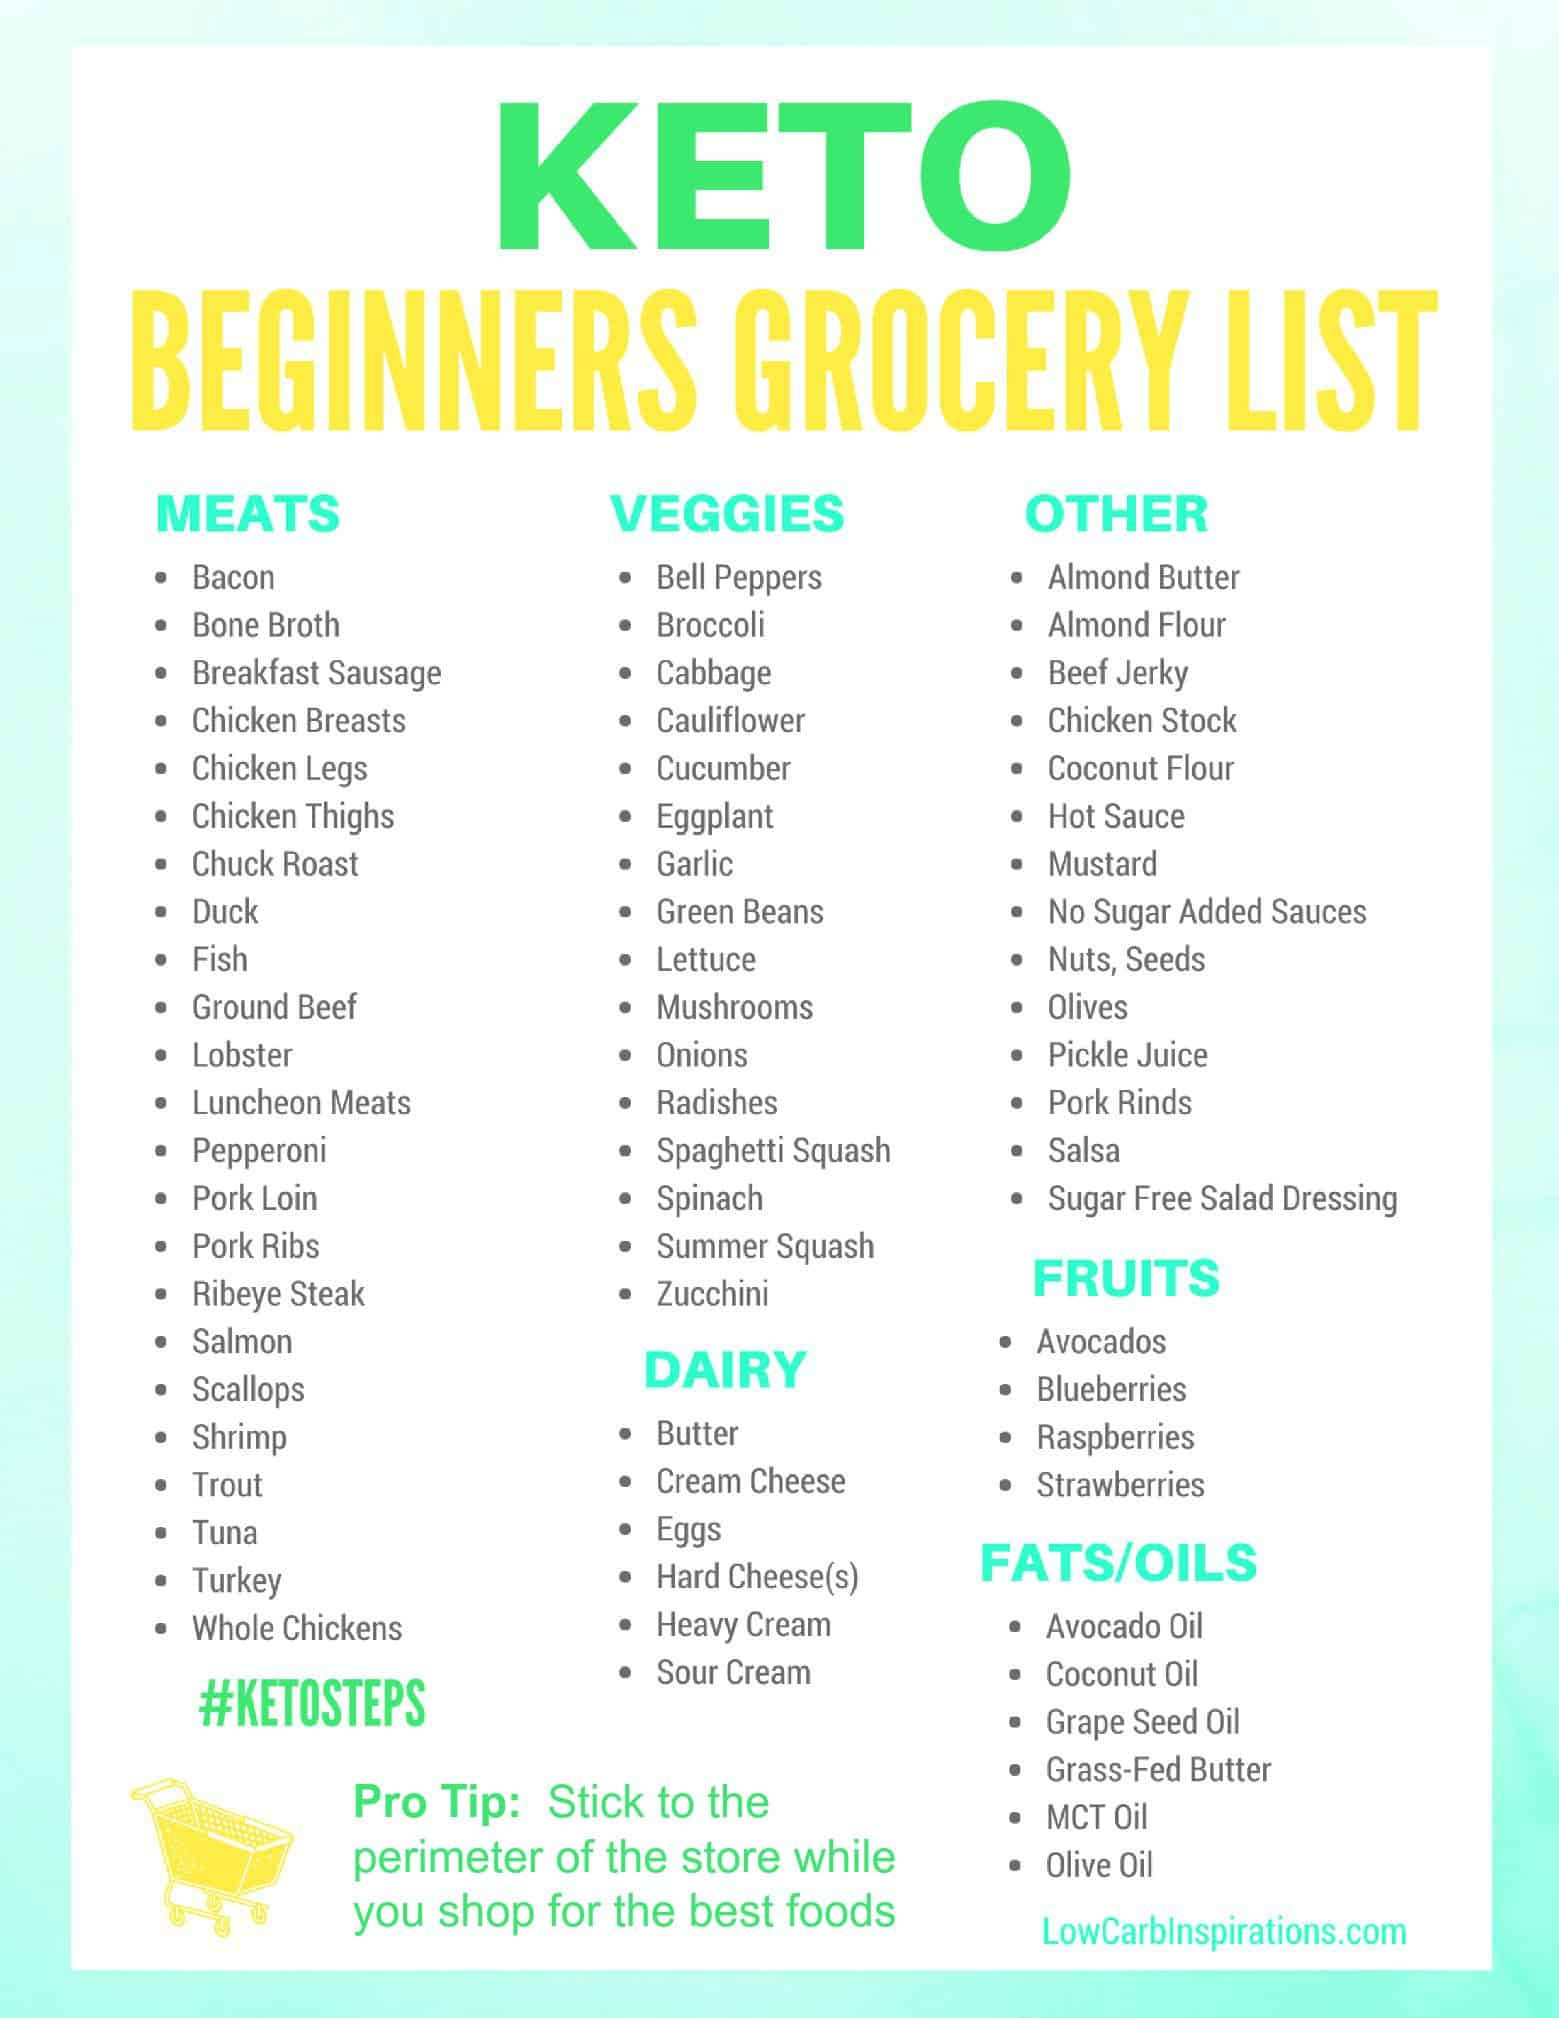 Ketosis Diet For Beginners  Keto Grocery List for Beginners iSaveA2Z